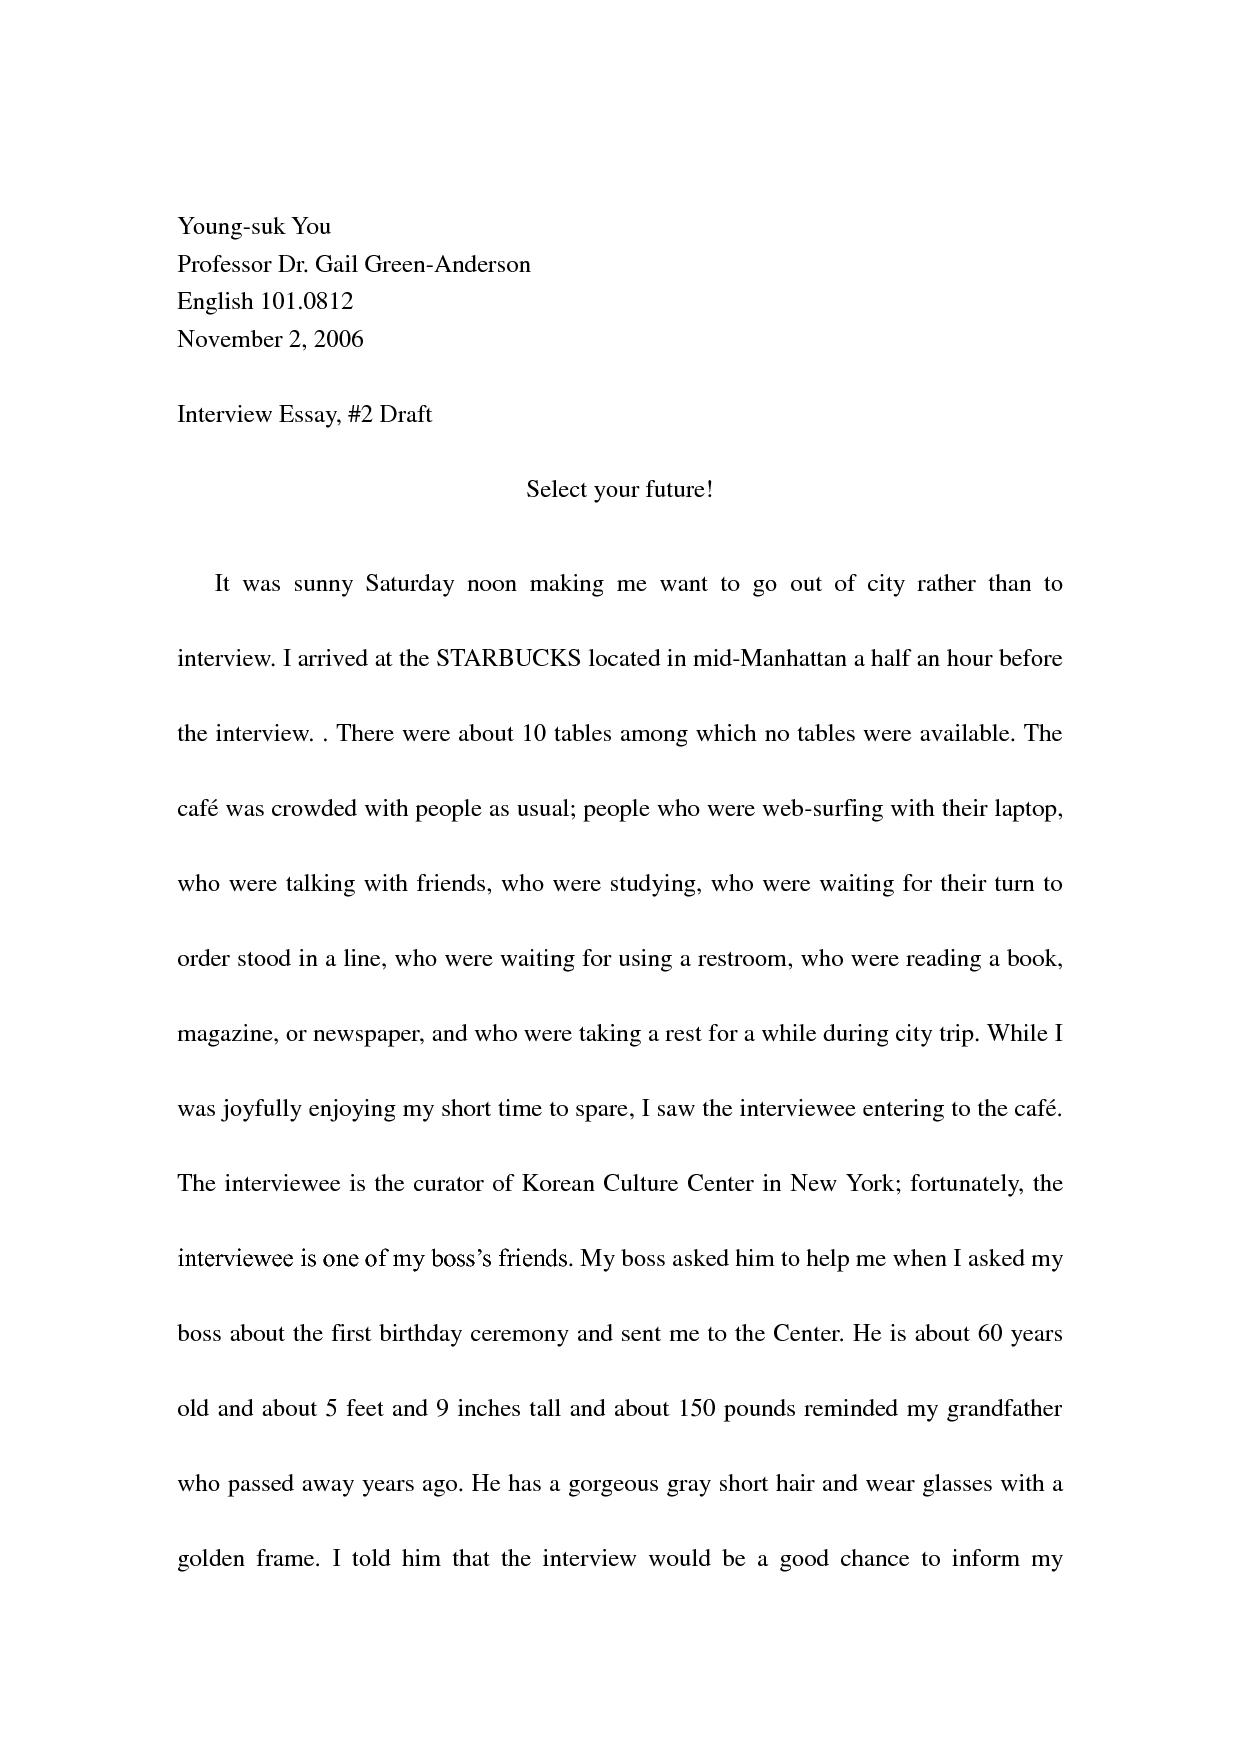 002 Narrative Interview Essay Exceptional Outline First Job Full